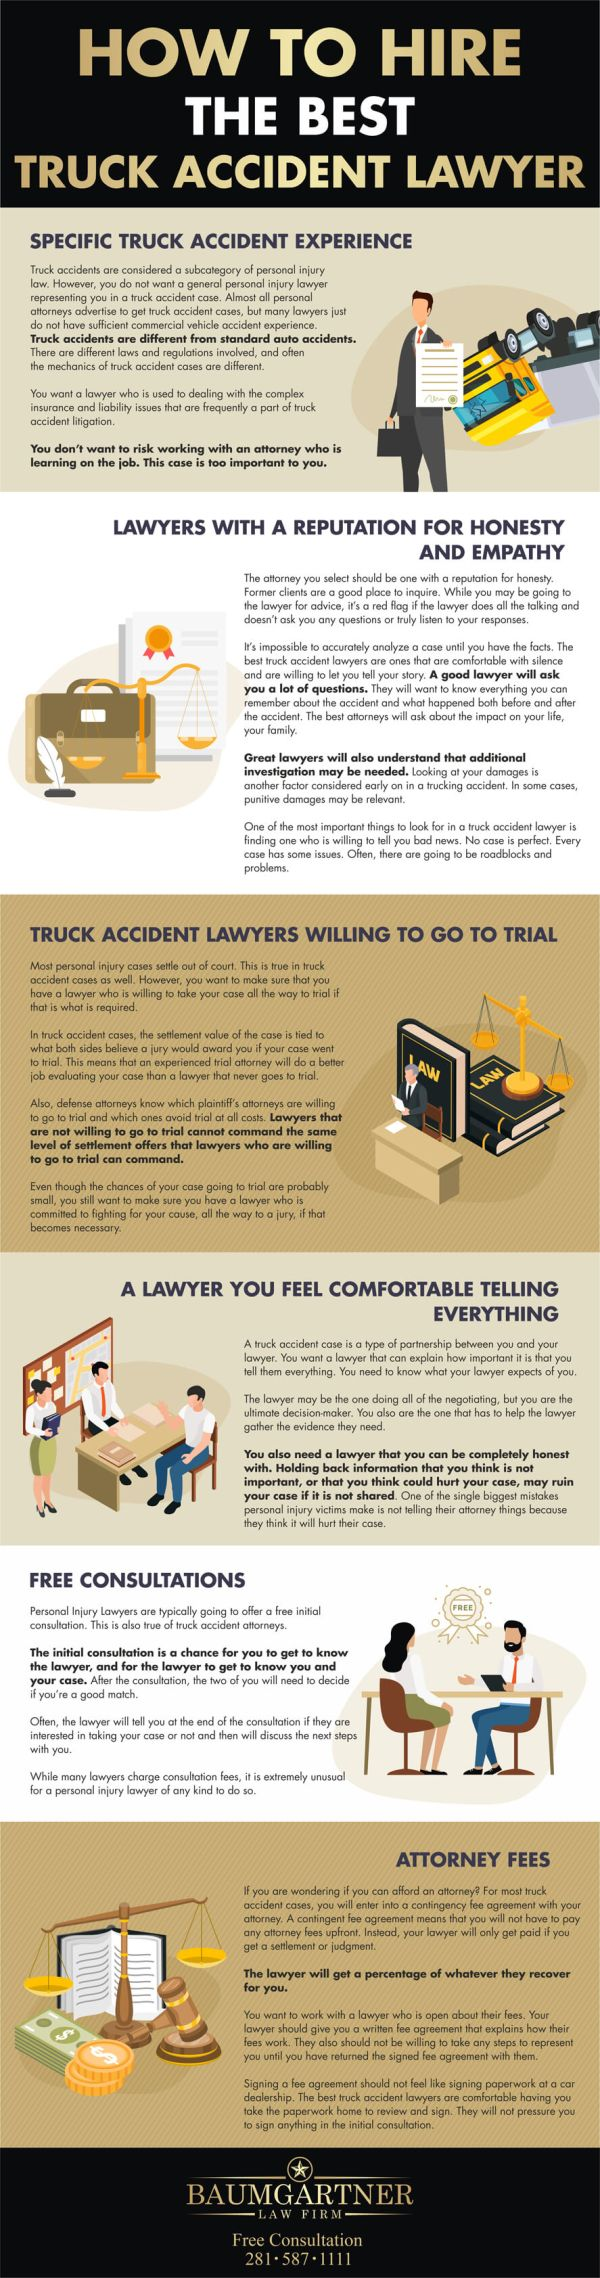 How-to-hire-the-best-truck-accident-lawyer-infographic